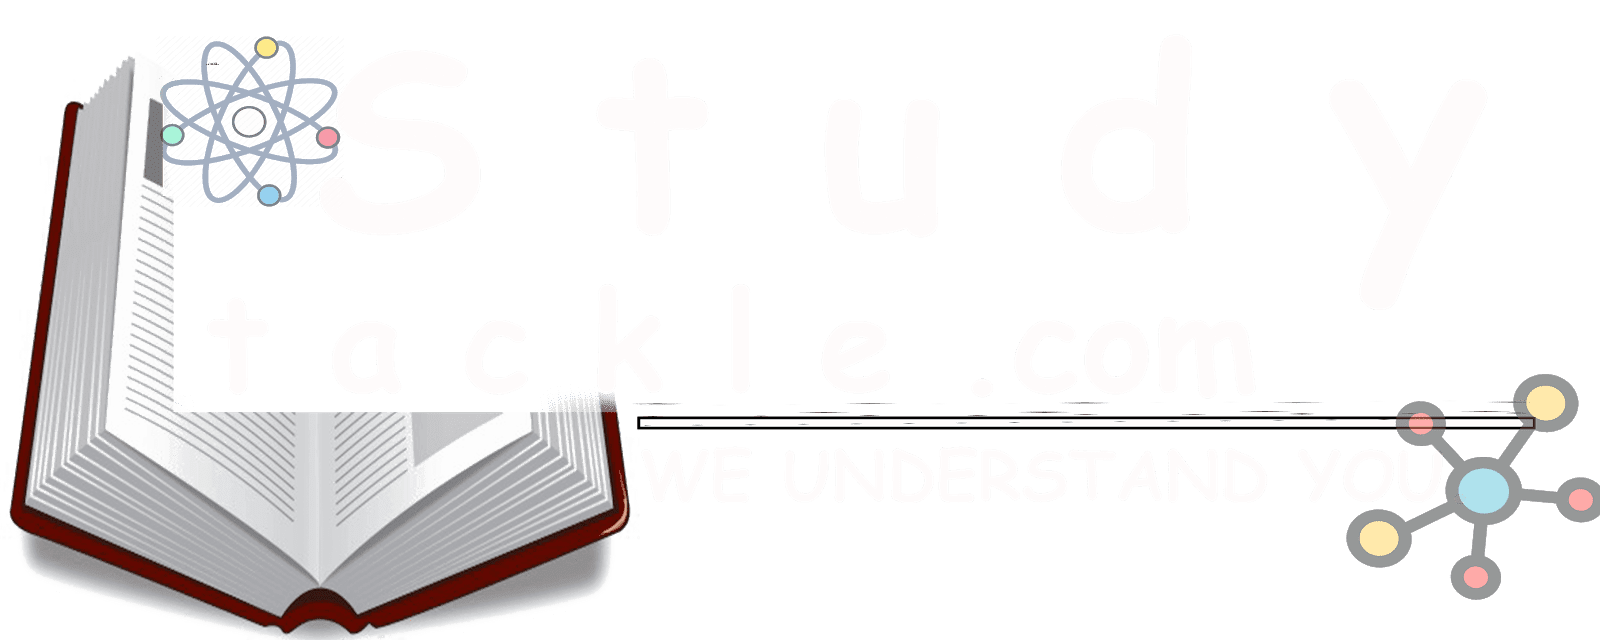 Studytackle.com || Educational website